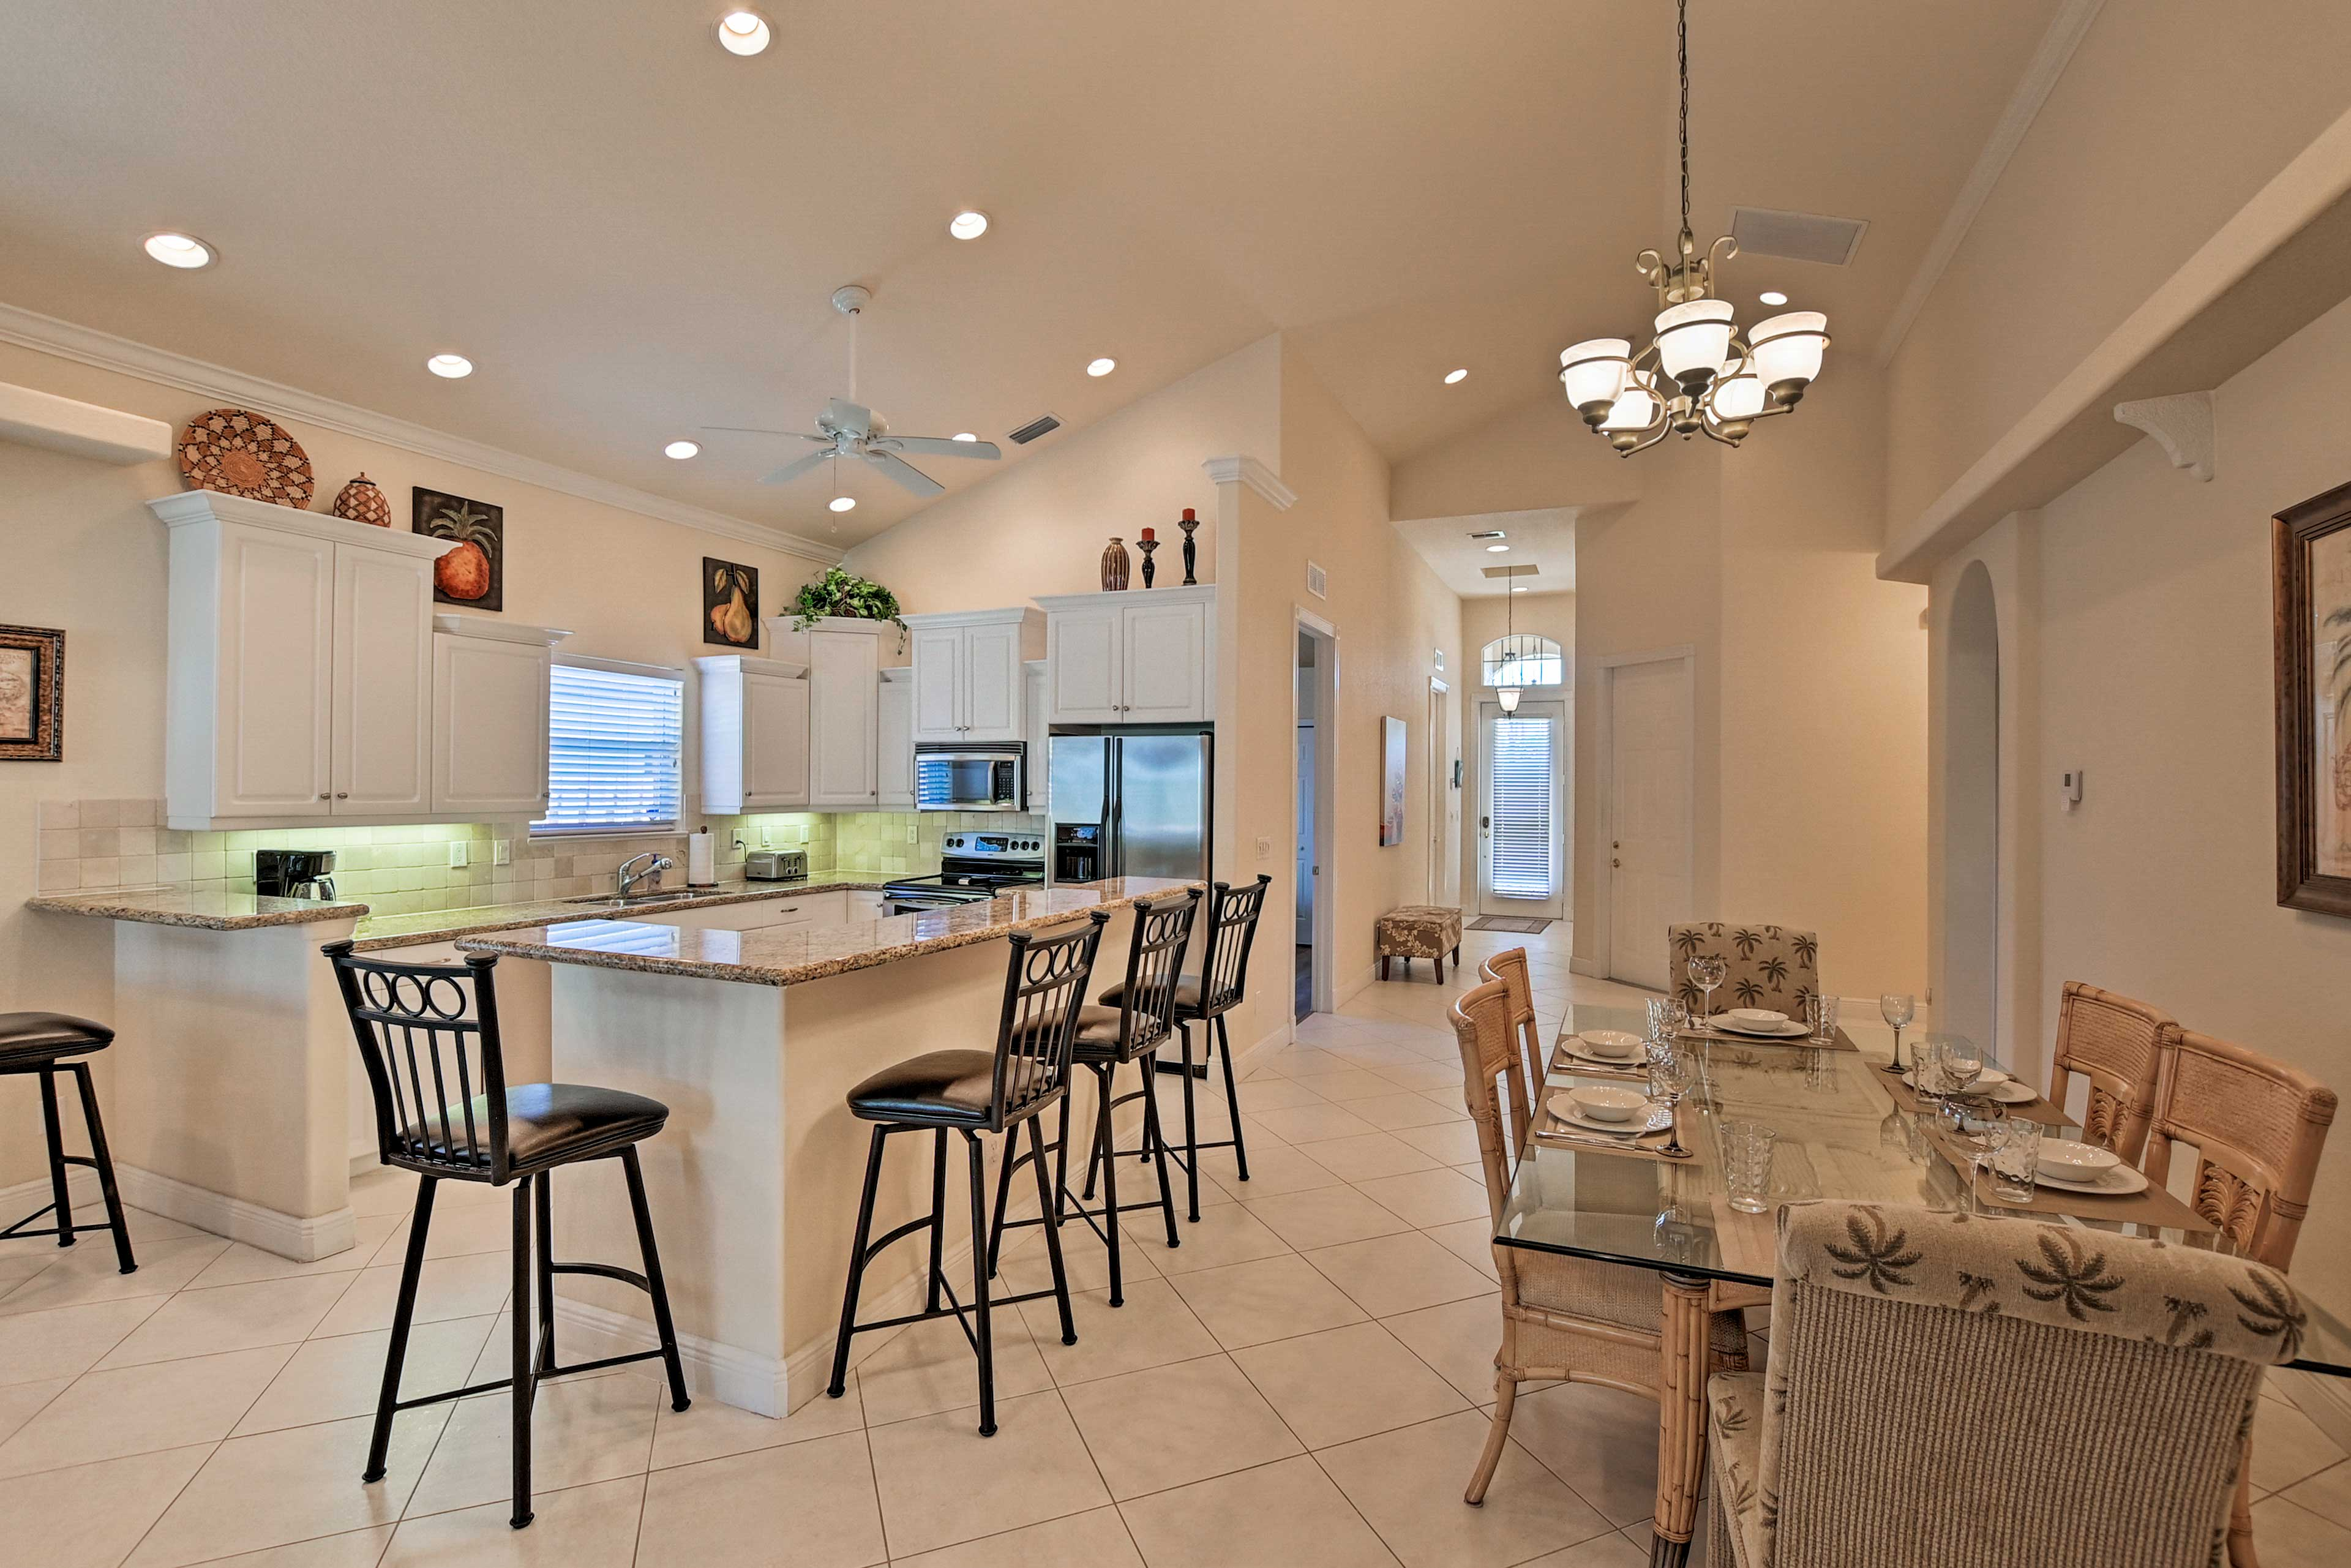 The kitchen and dining area are open to the living space.